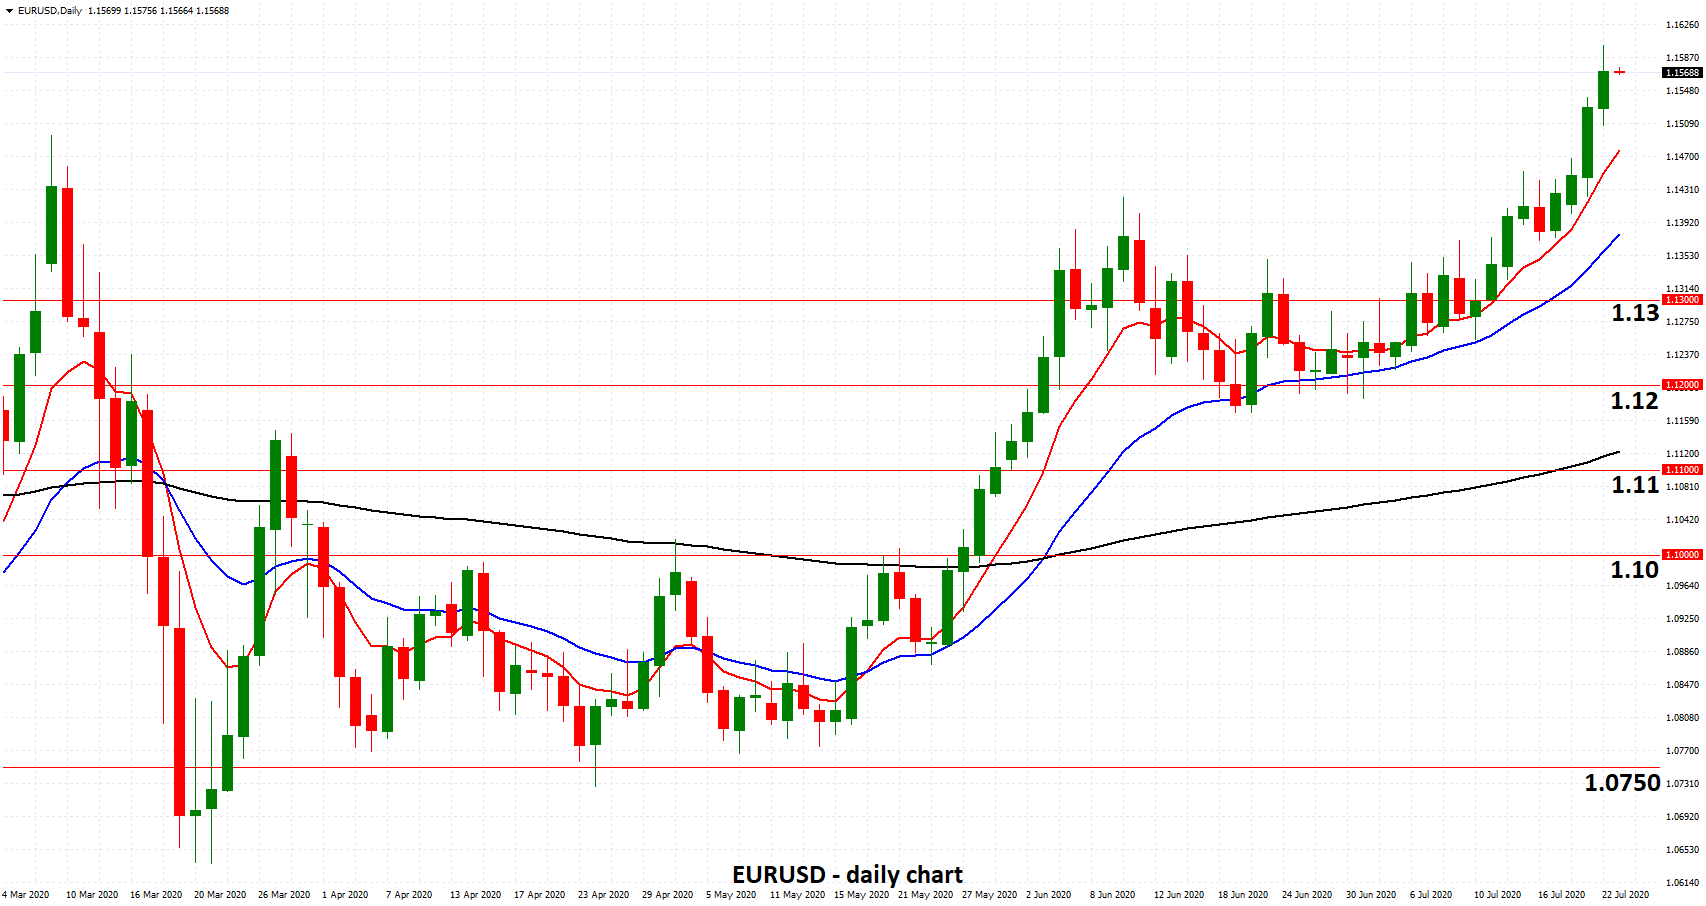 EURUSD - Surges to 18 Month High at 1.16 after Historic European Union Deal